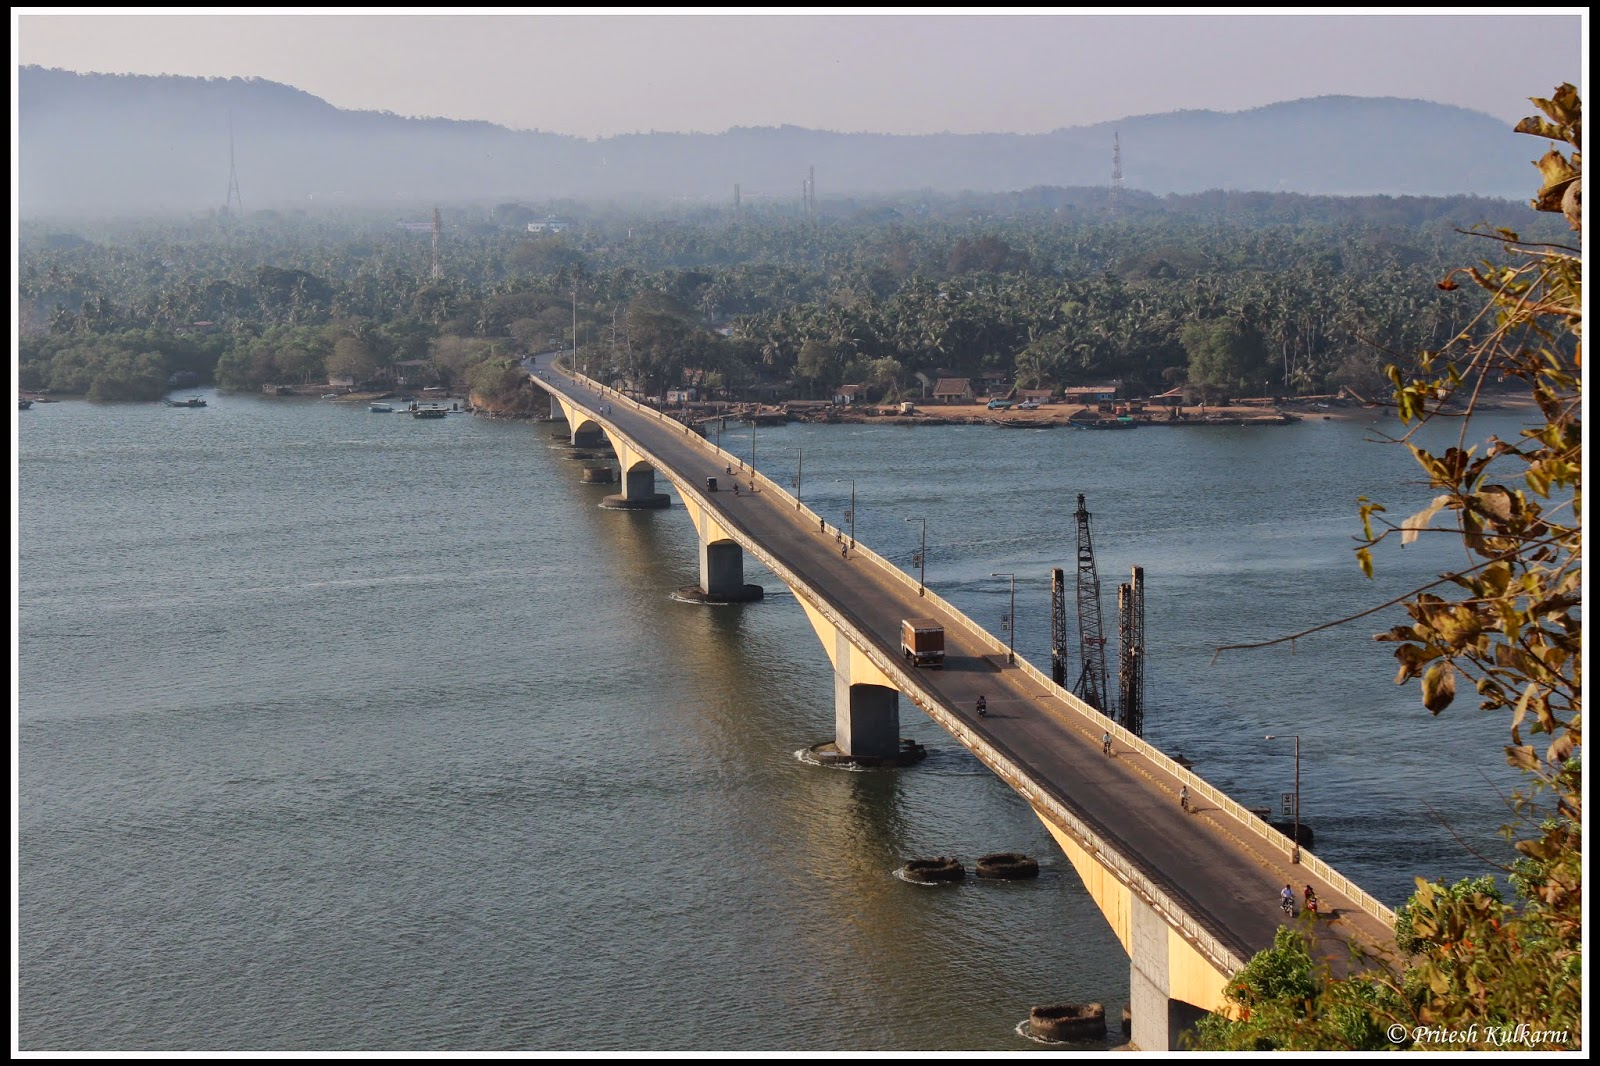 Karwar Bridge